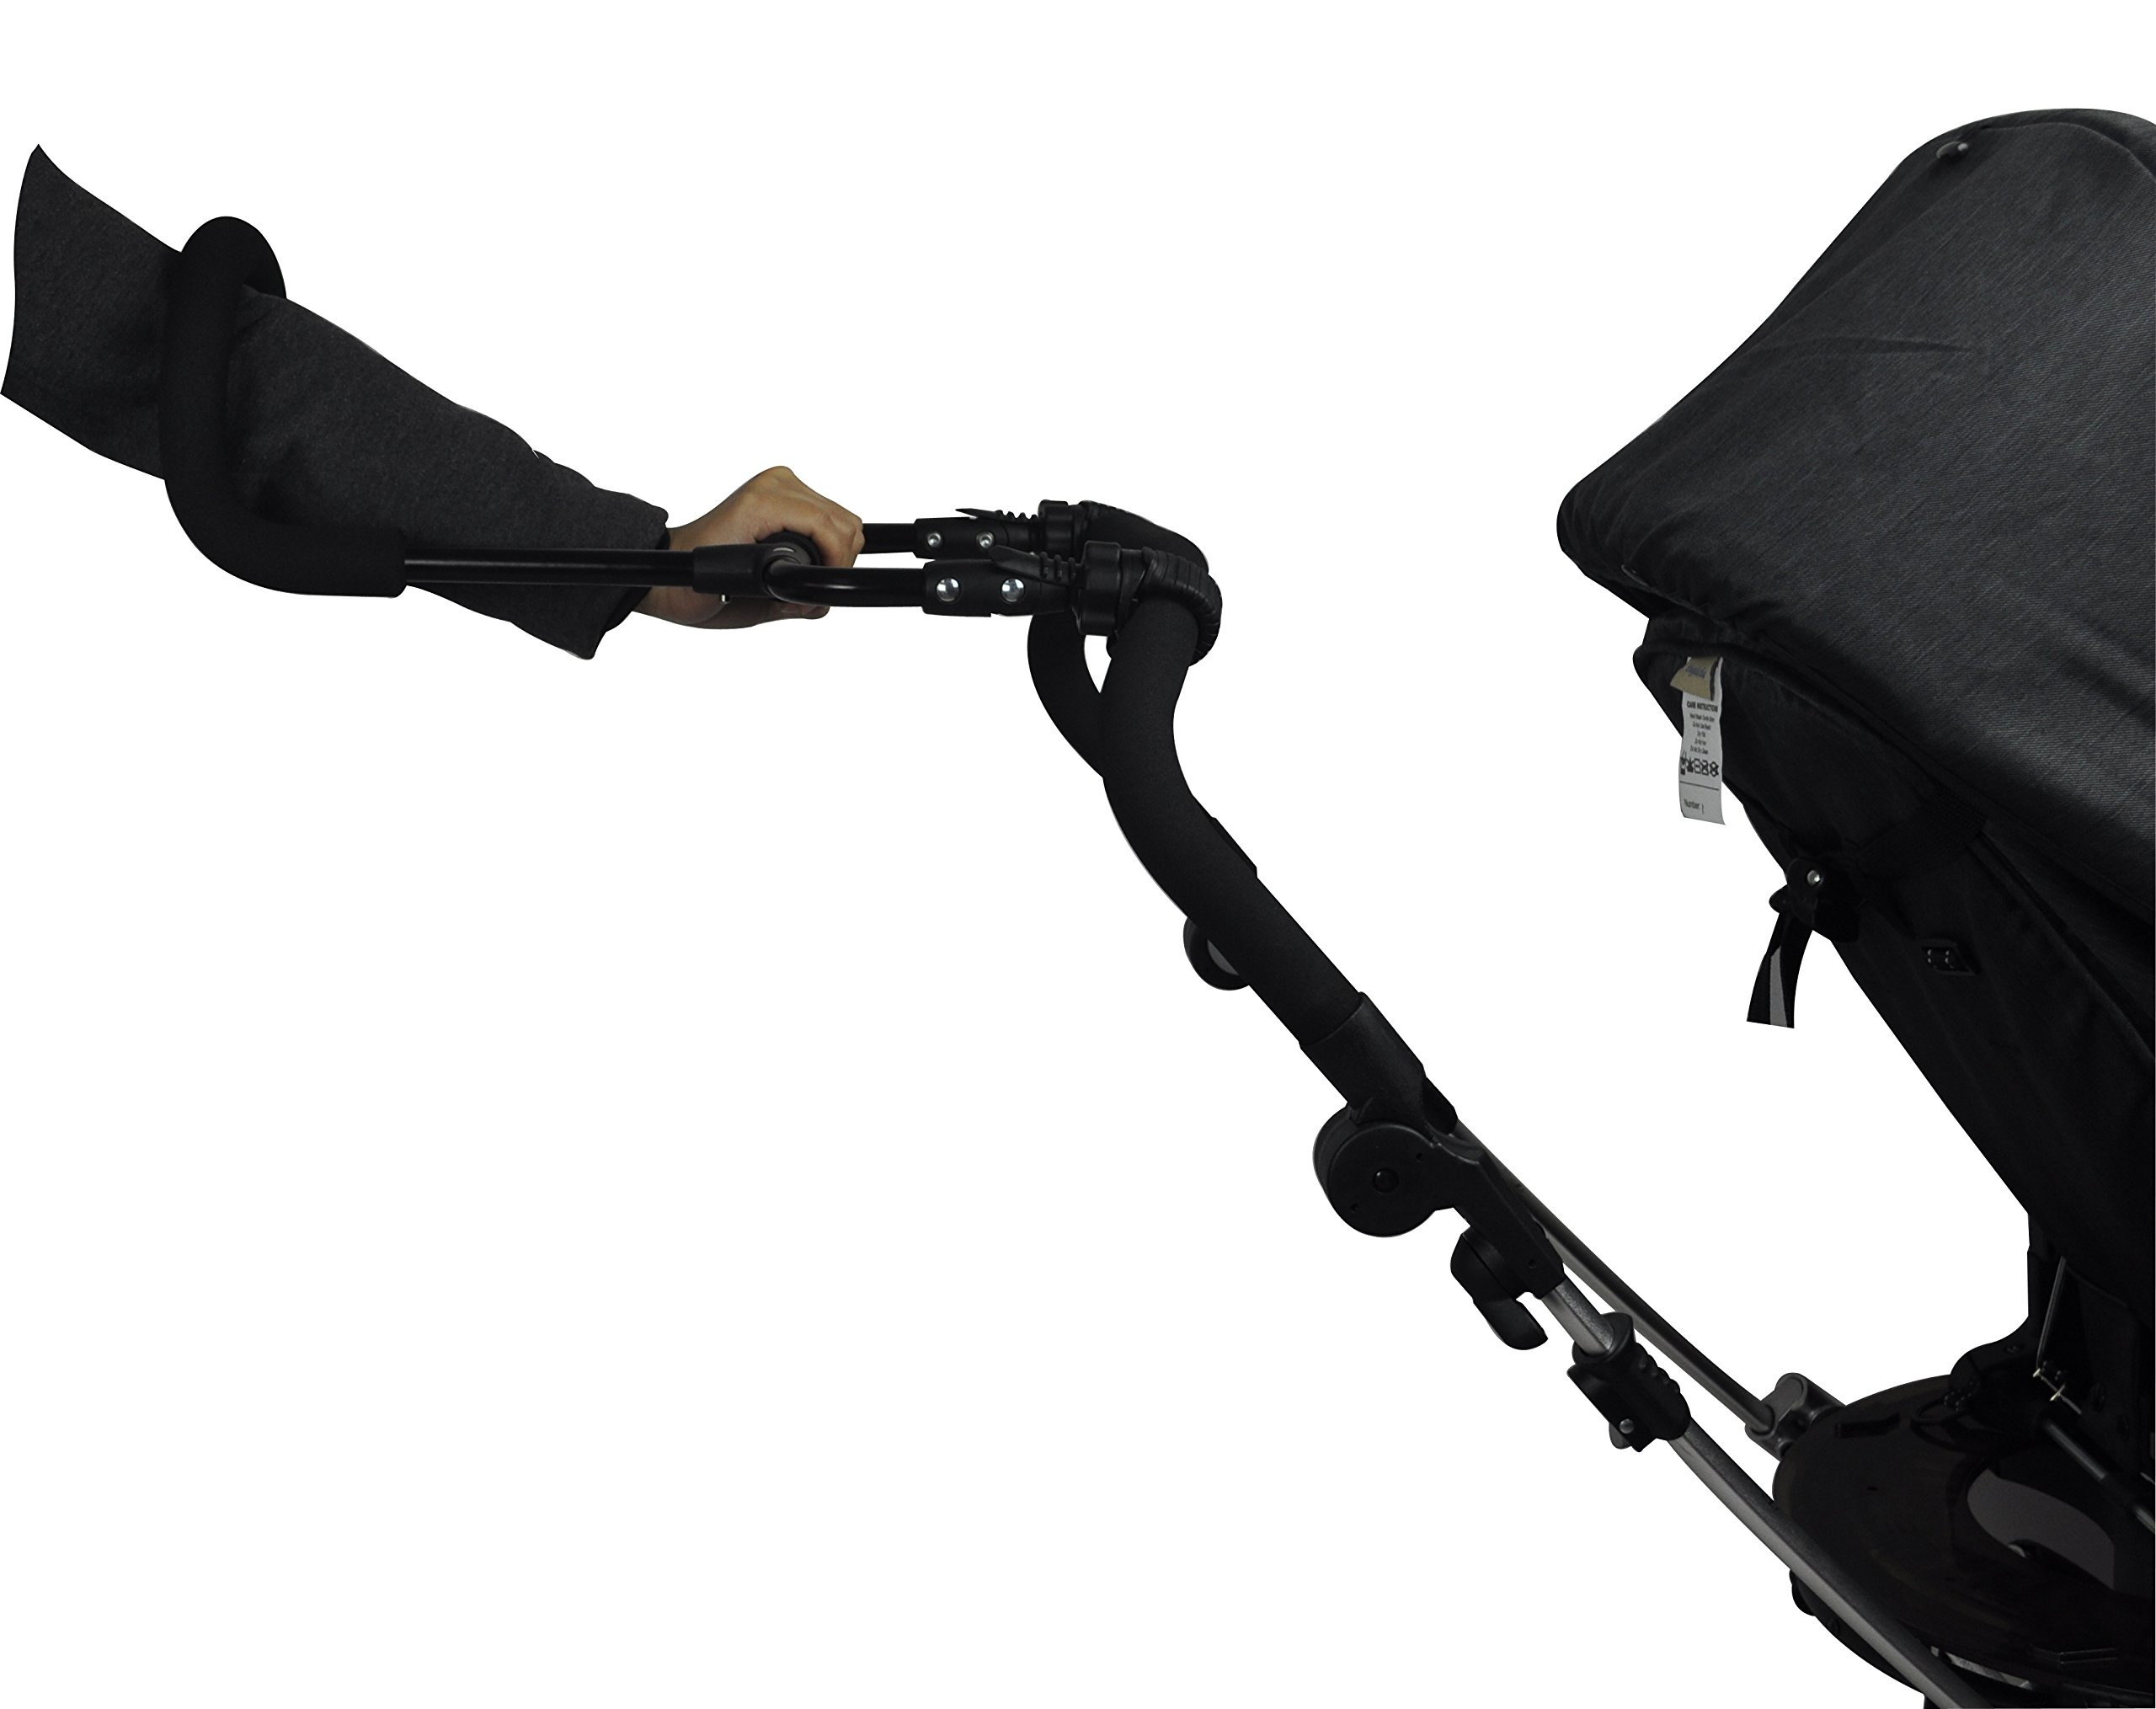 Englacha Cozy Stroll Handle Extension Bar, Black Englacha USA Universal lightweight handle extension bar (aluminum tube) can be installed on any buggy, stroller or pram without extra tools required Allows you control your stroller with just one hand and multitask with your free hand Increases extra at least 12-15 cm space for walking in the back of stroller 5